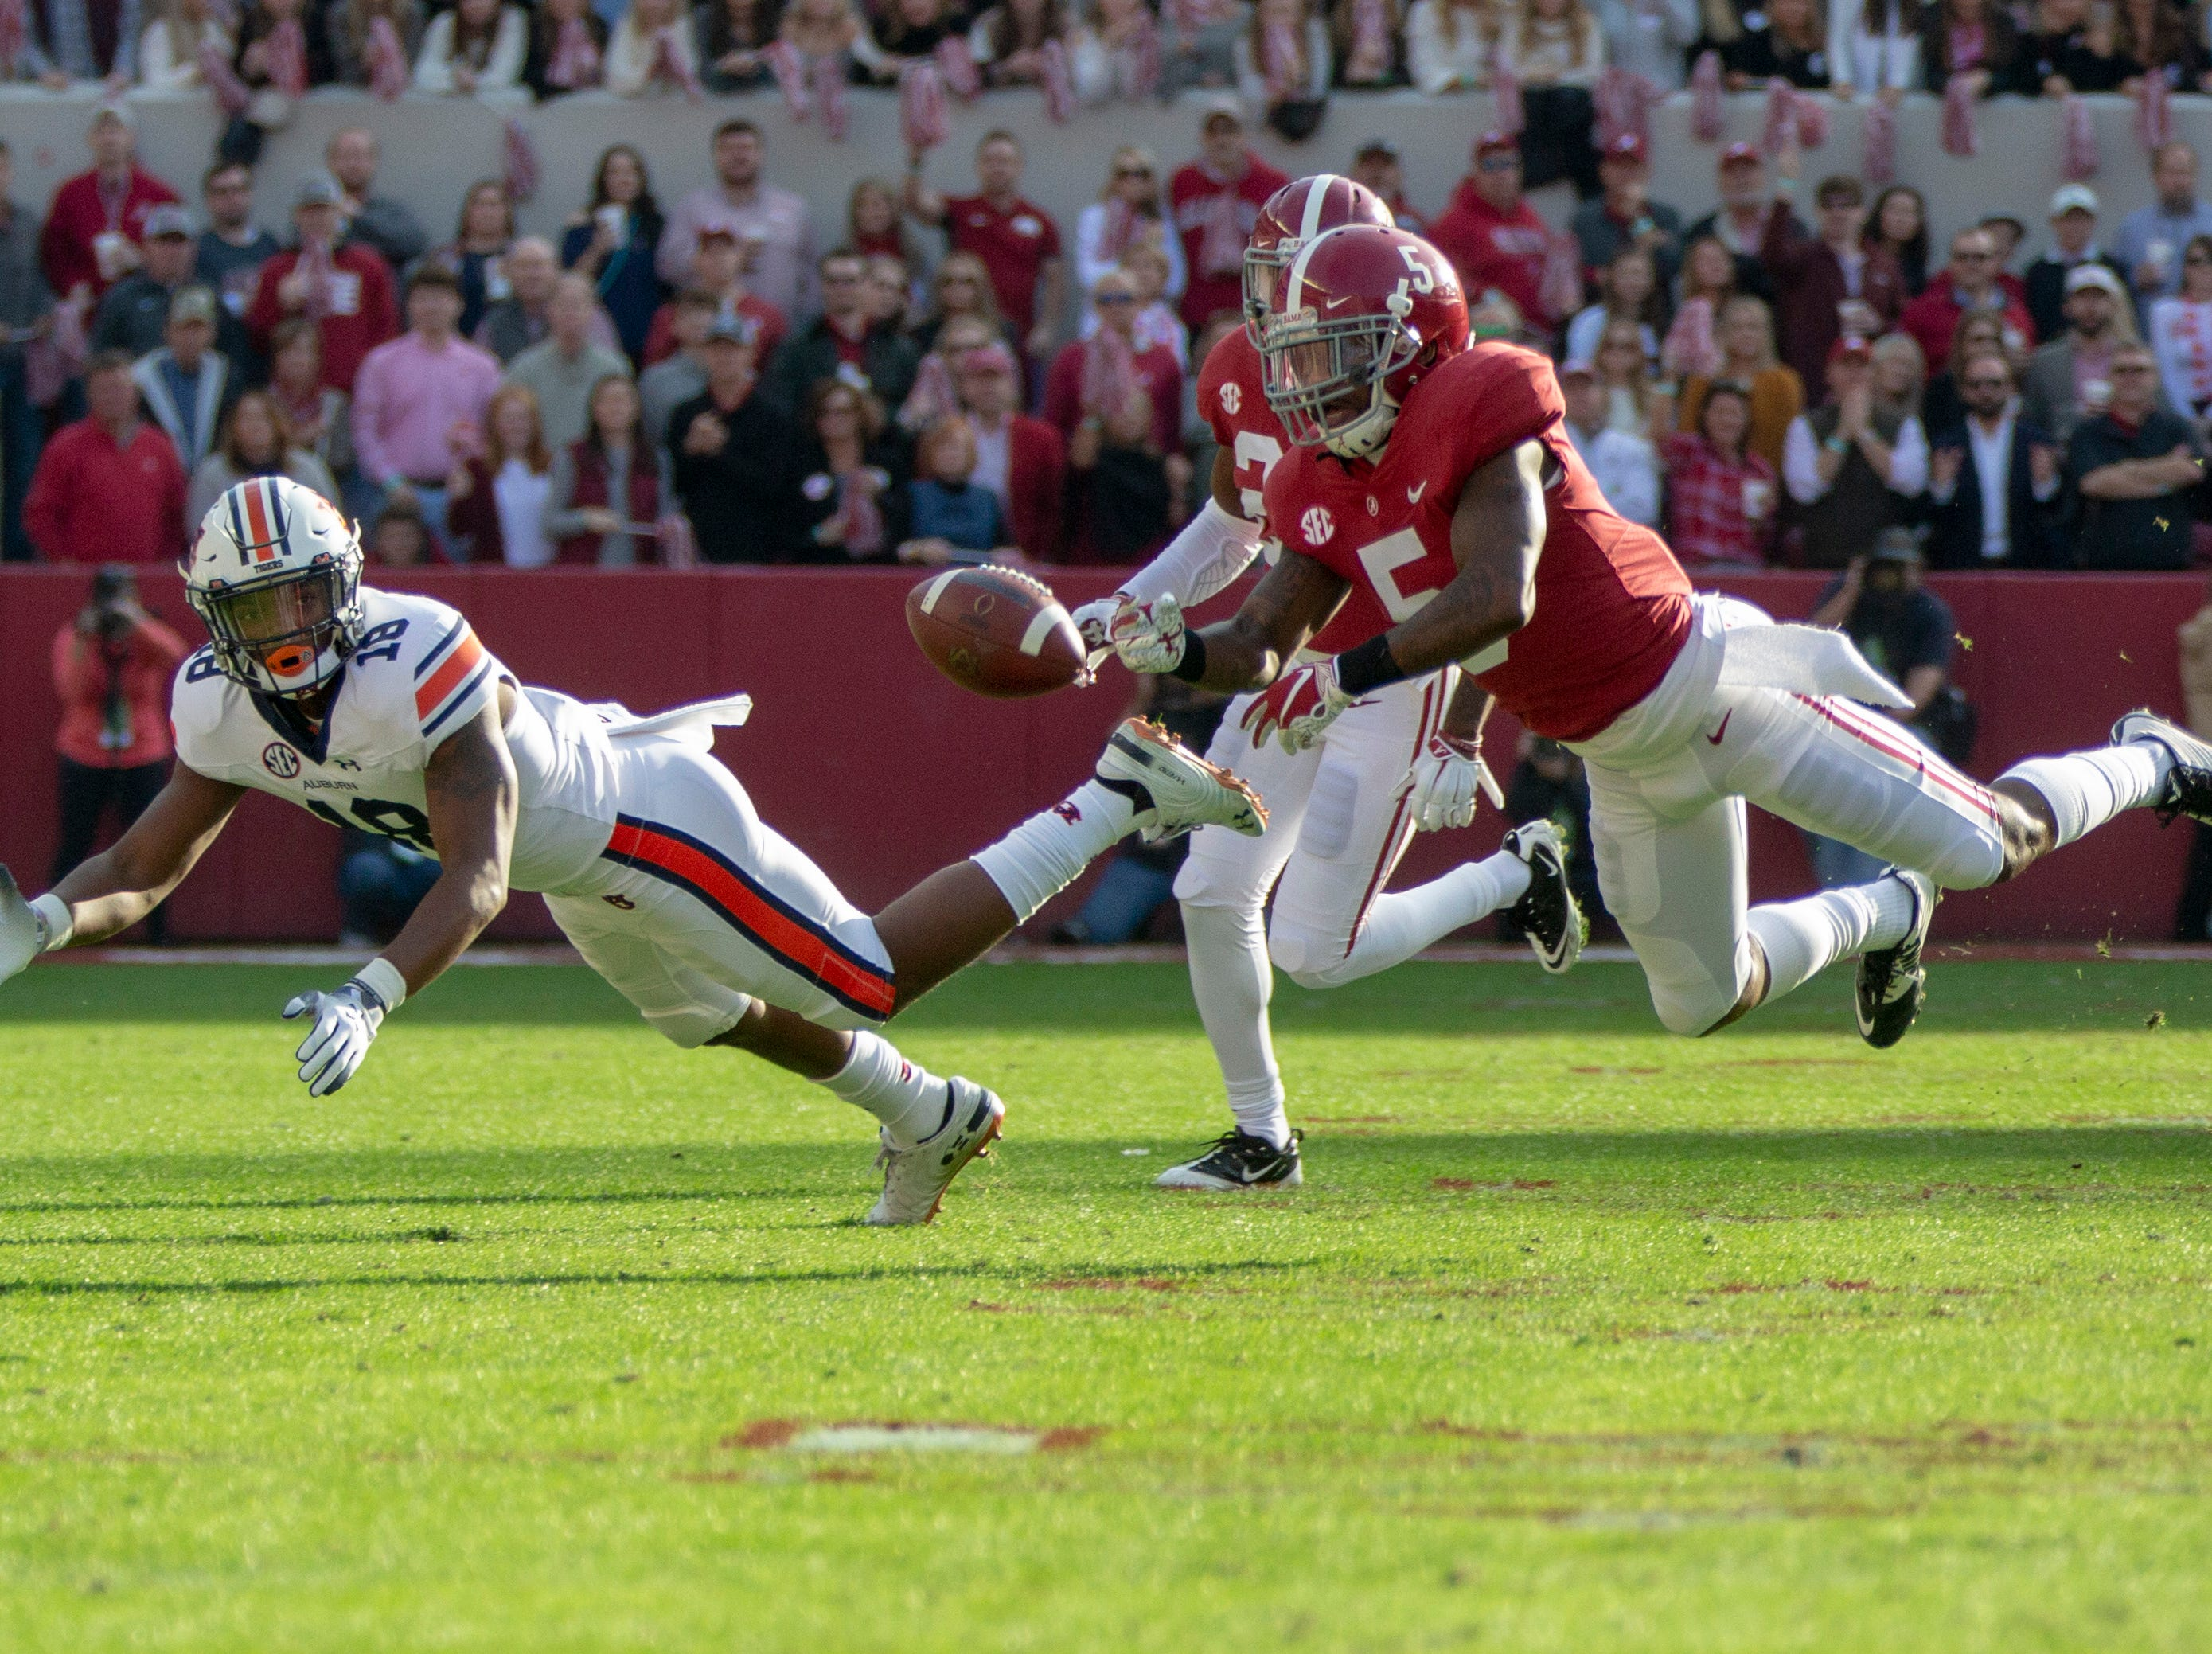 Alabama's Shyheim Carter dives for a pass intended for Auburn's Seth Williams.